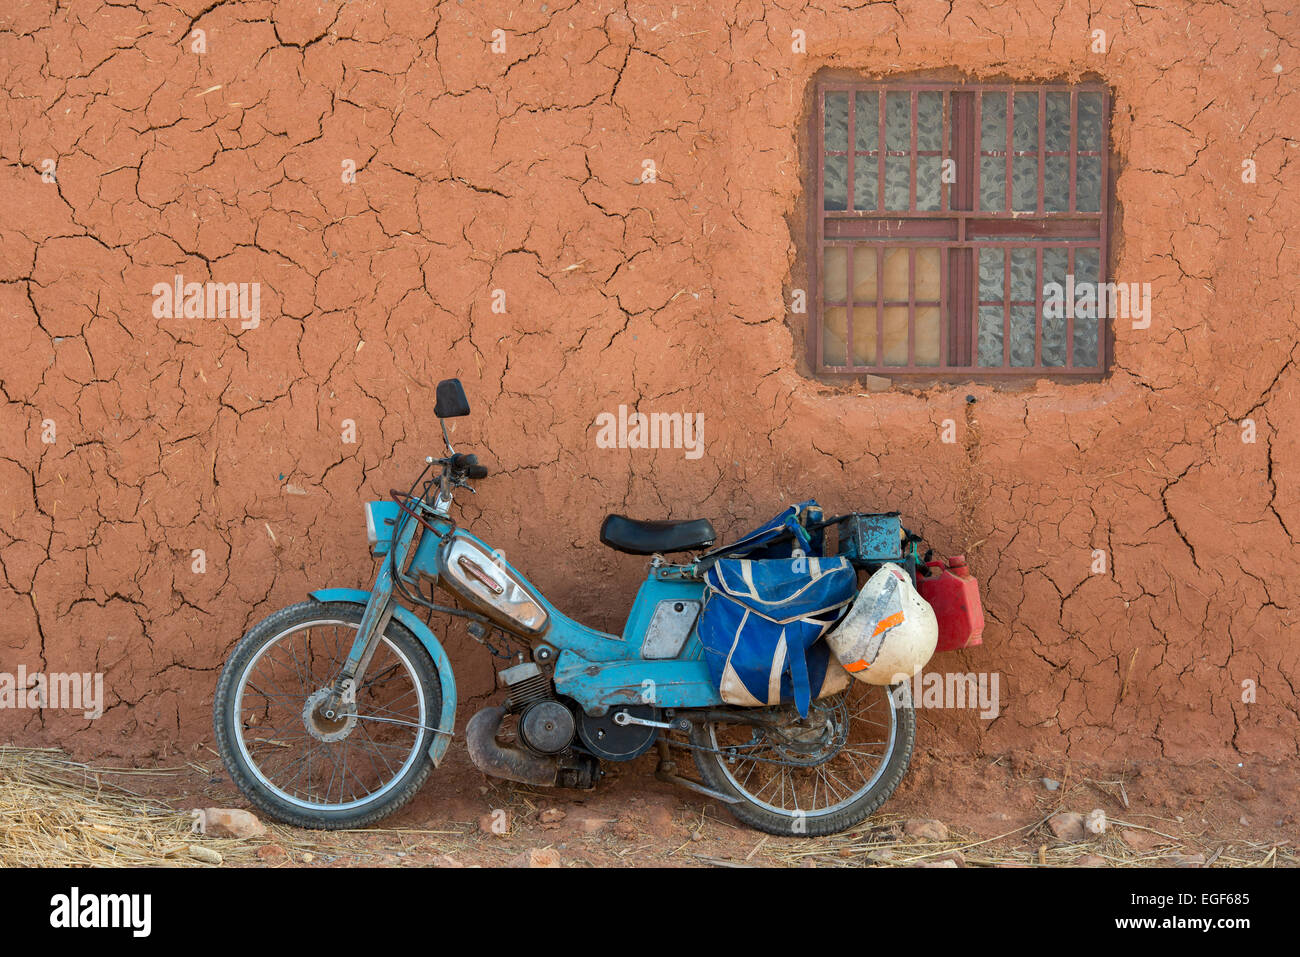 Vintage Motorcycle, Errachidia Province - Stock Image